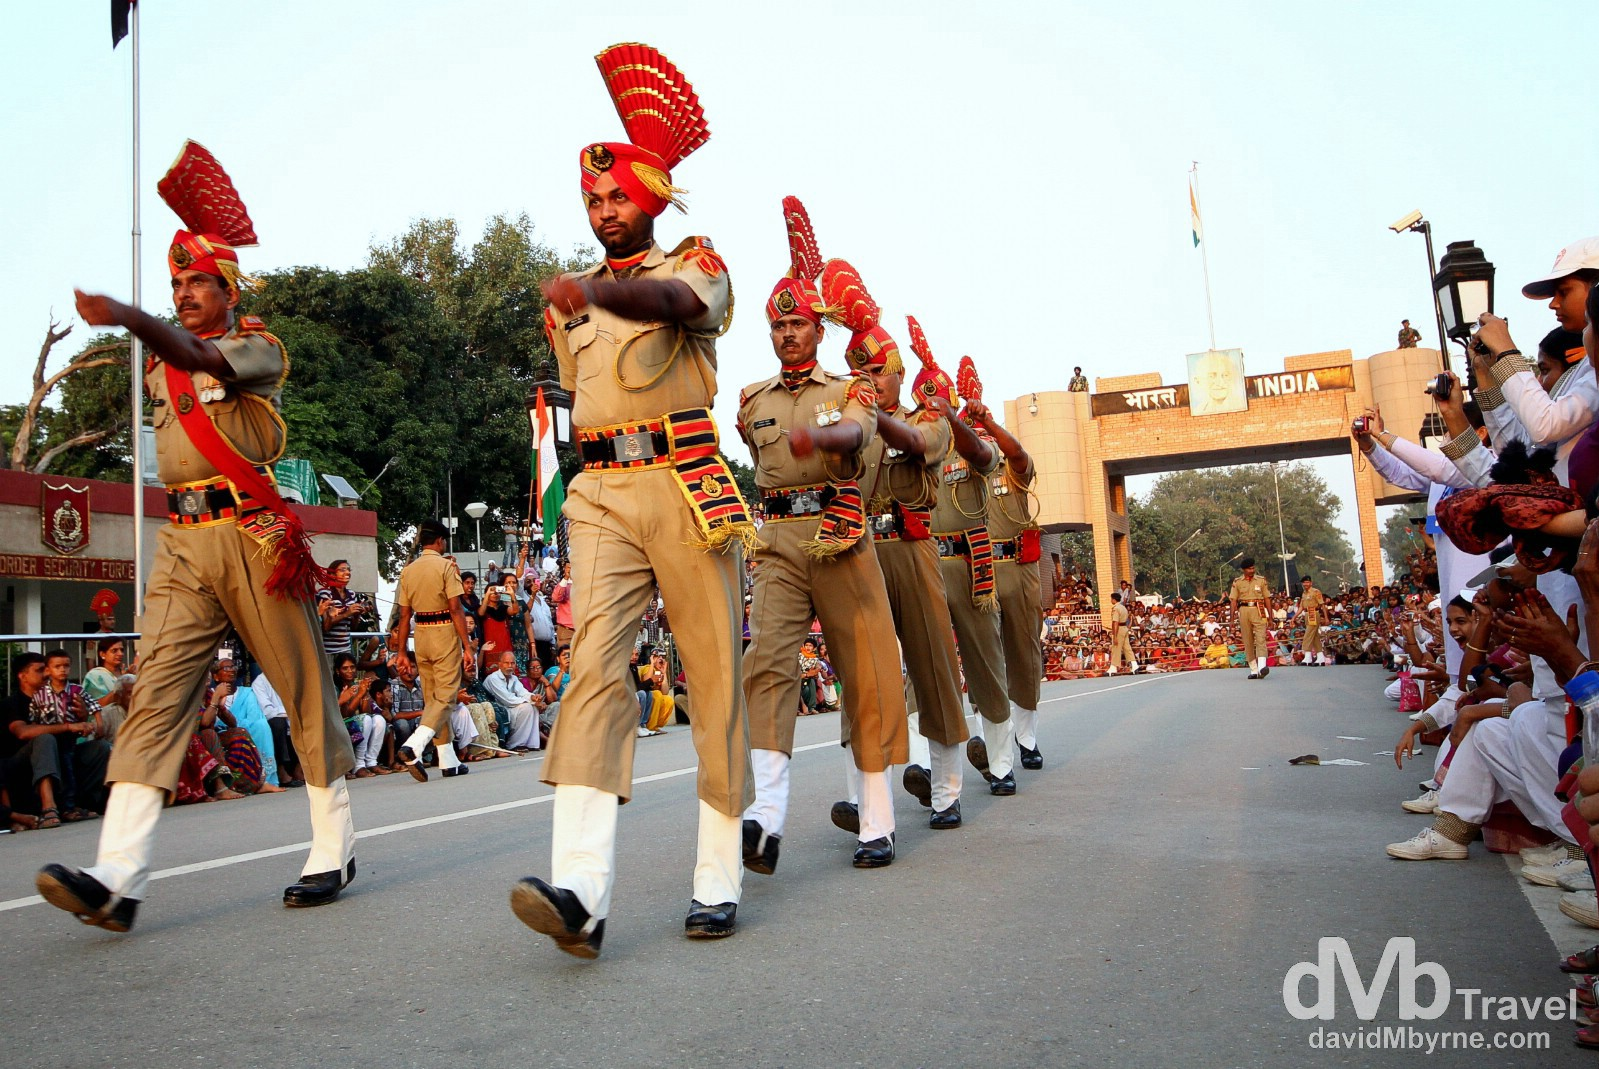 Indian border guards marching to meet their opposite number at the Indian-Pakistani border as part of the nightly ceremonial border crossing. October 9th 2012.